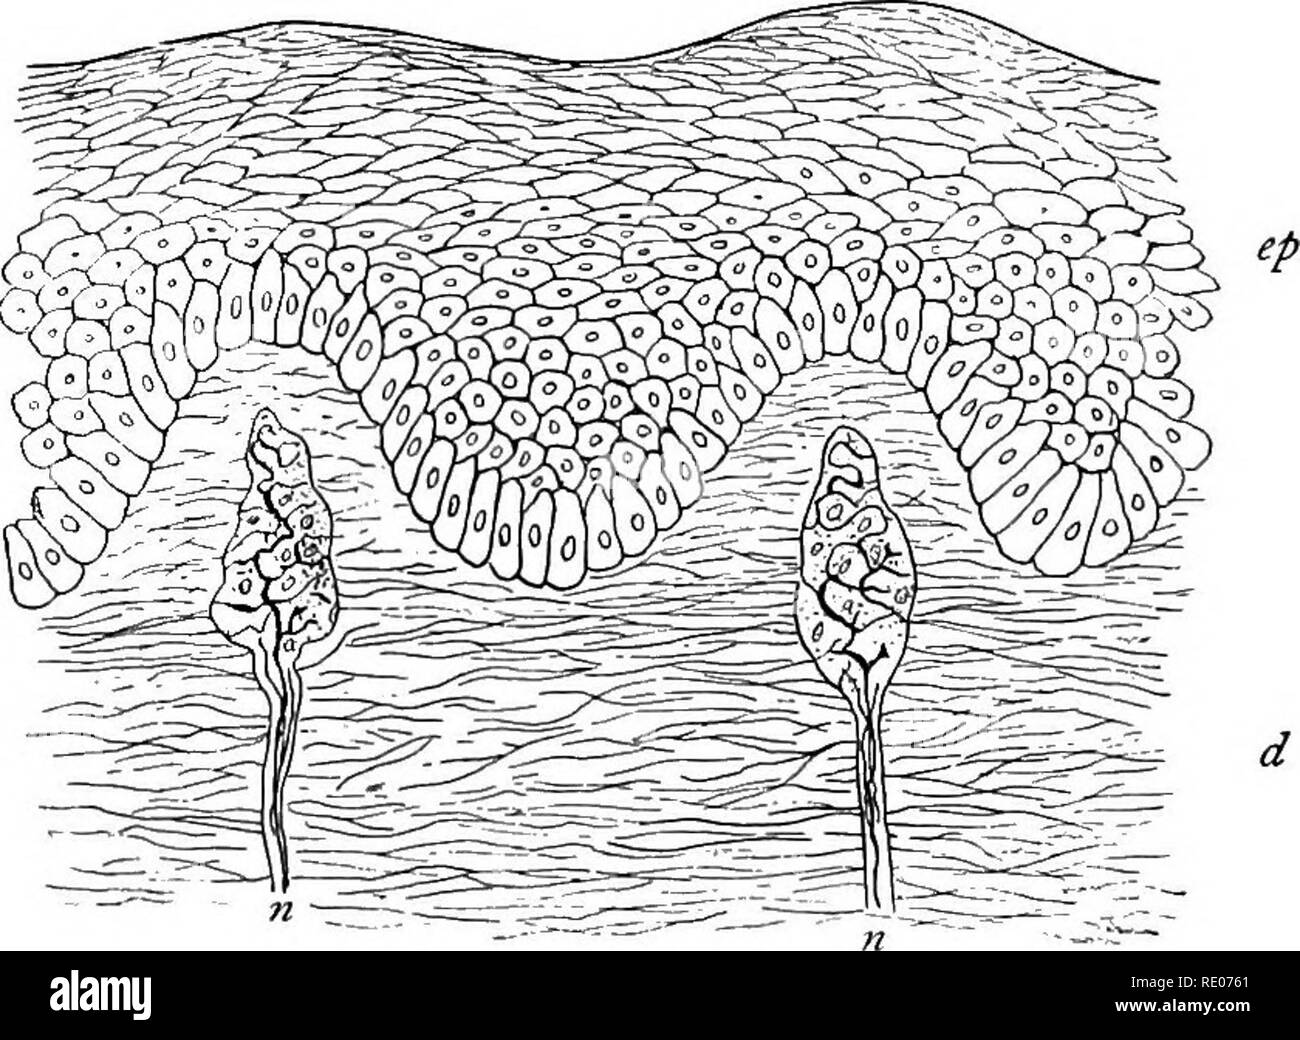 Skin Cells Black and White Stock Photos & Images - Alamy